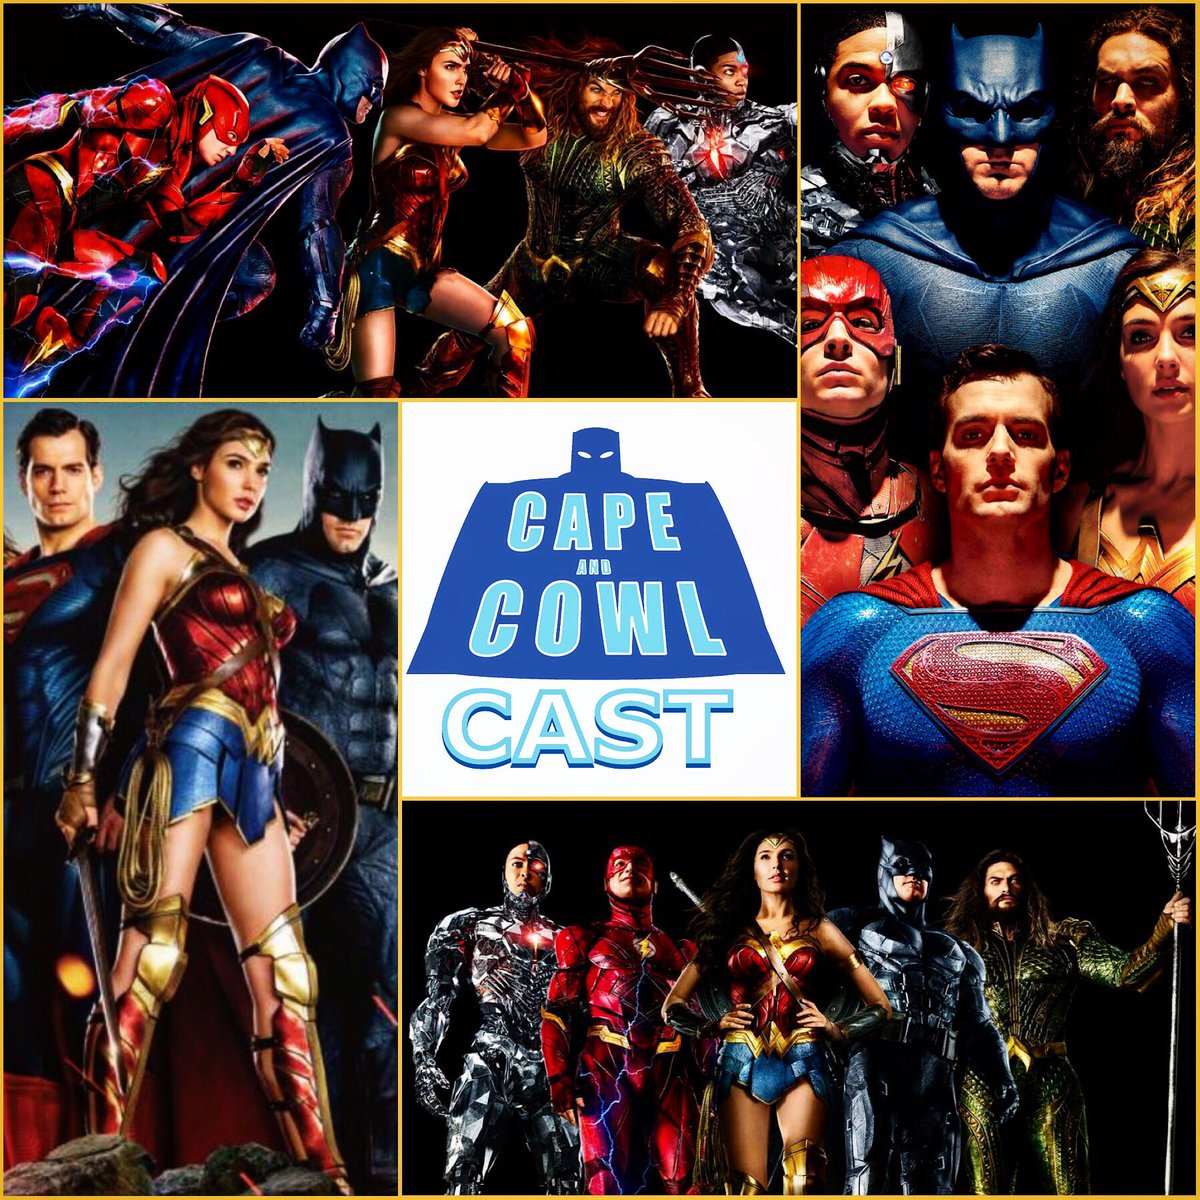 Cape and Cowl Cast #86 Justice League Review